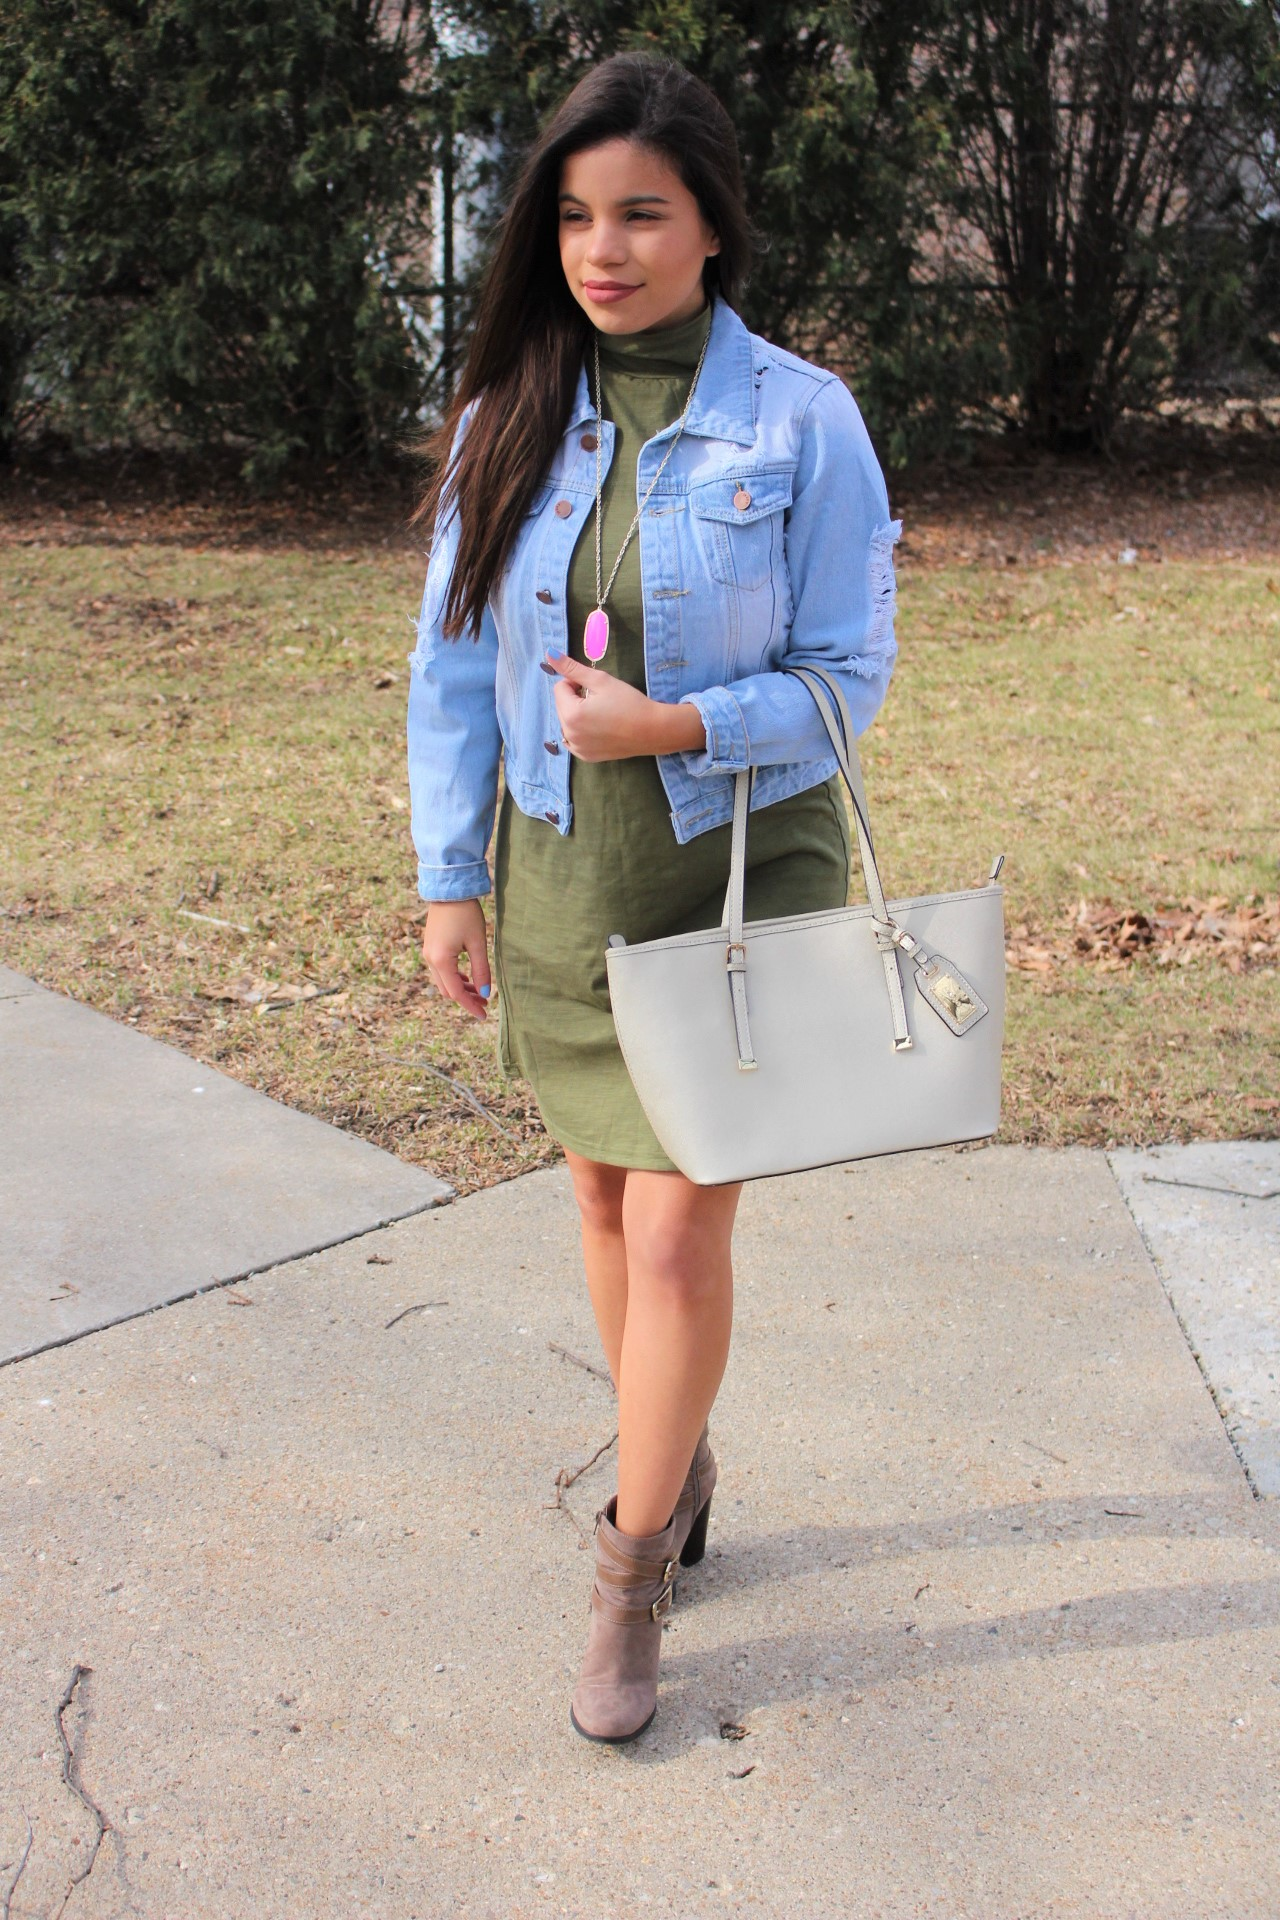 makeme chic military dress ootd jean jacket ALDO spring outfit handbag accesories ripped jean jacket perfect spring outfit by alejandra avila